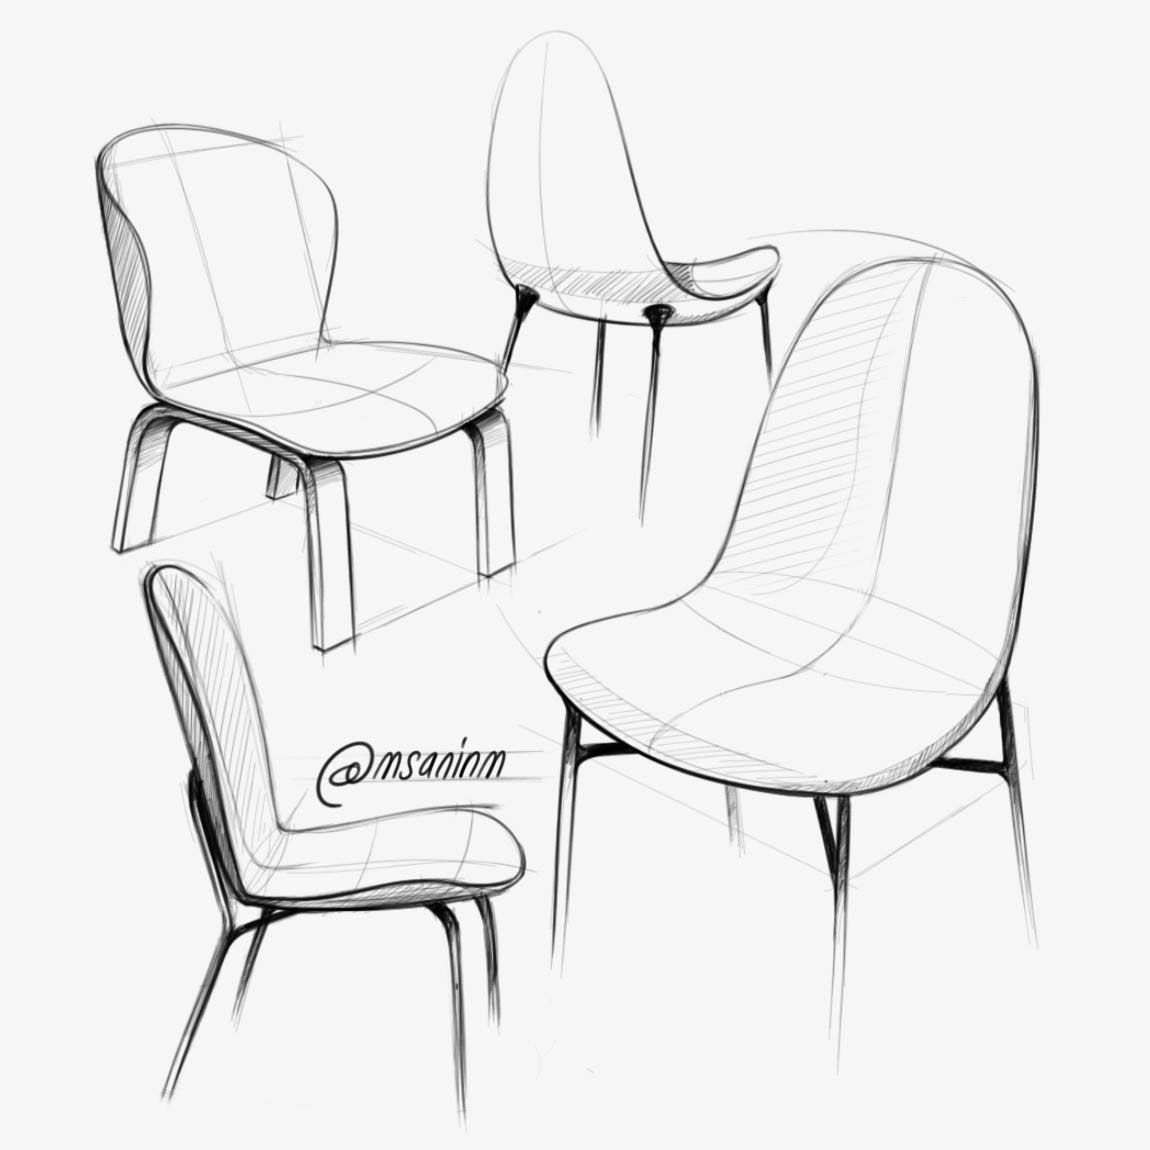 Furniture Sketches Furniture Design Sketches Sketch Furniture Design Pinterest